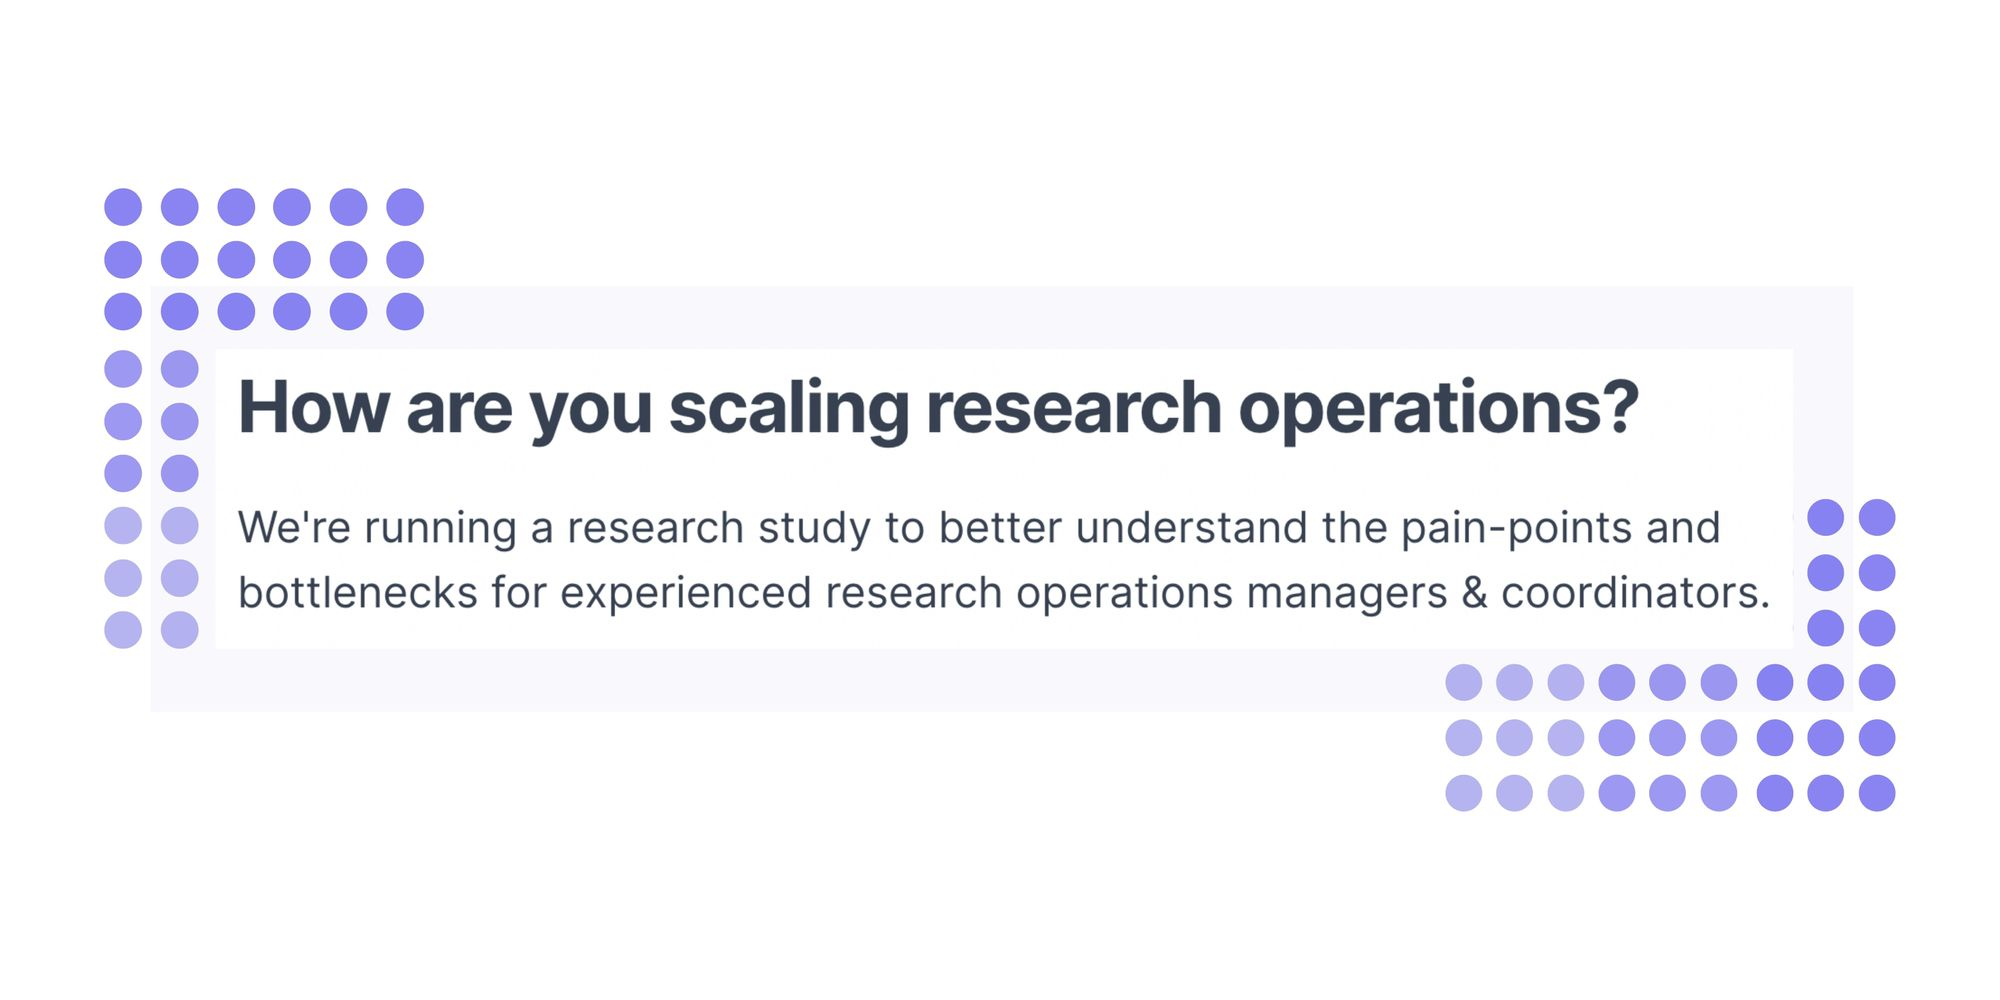 Great Question describes their research study purpose